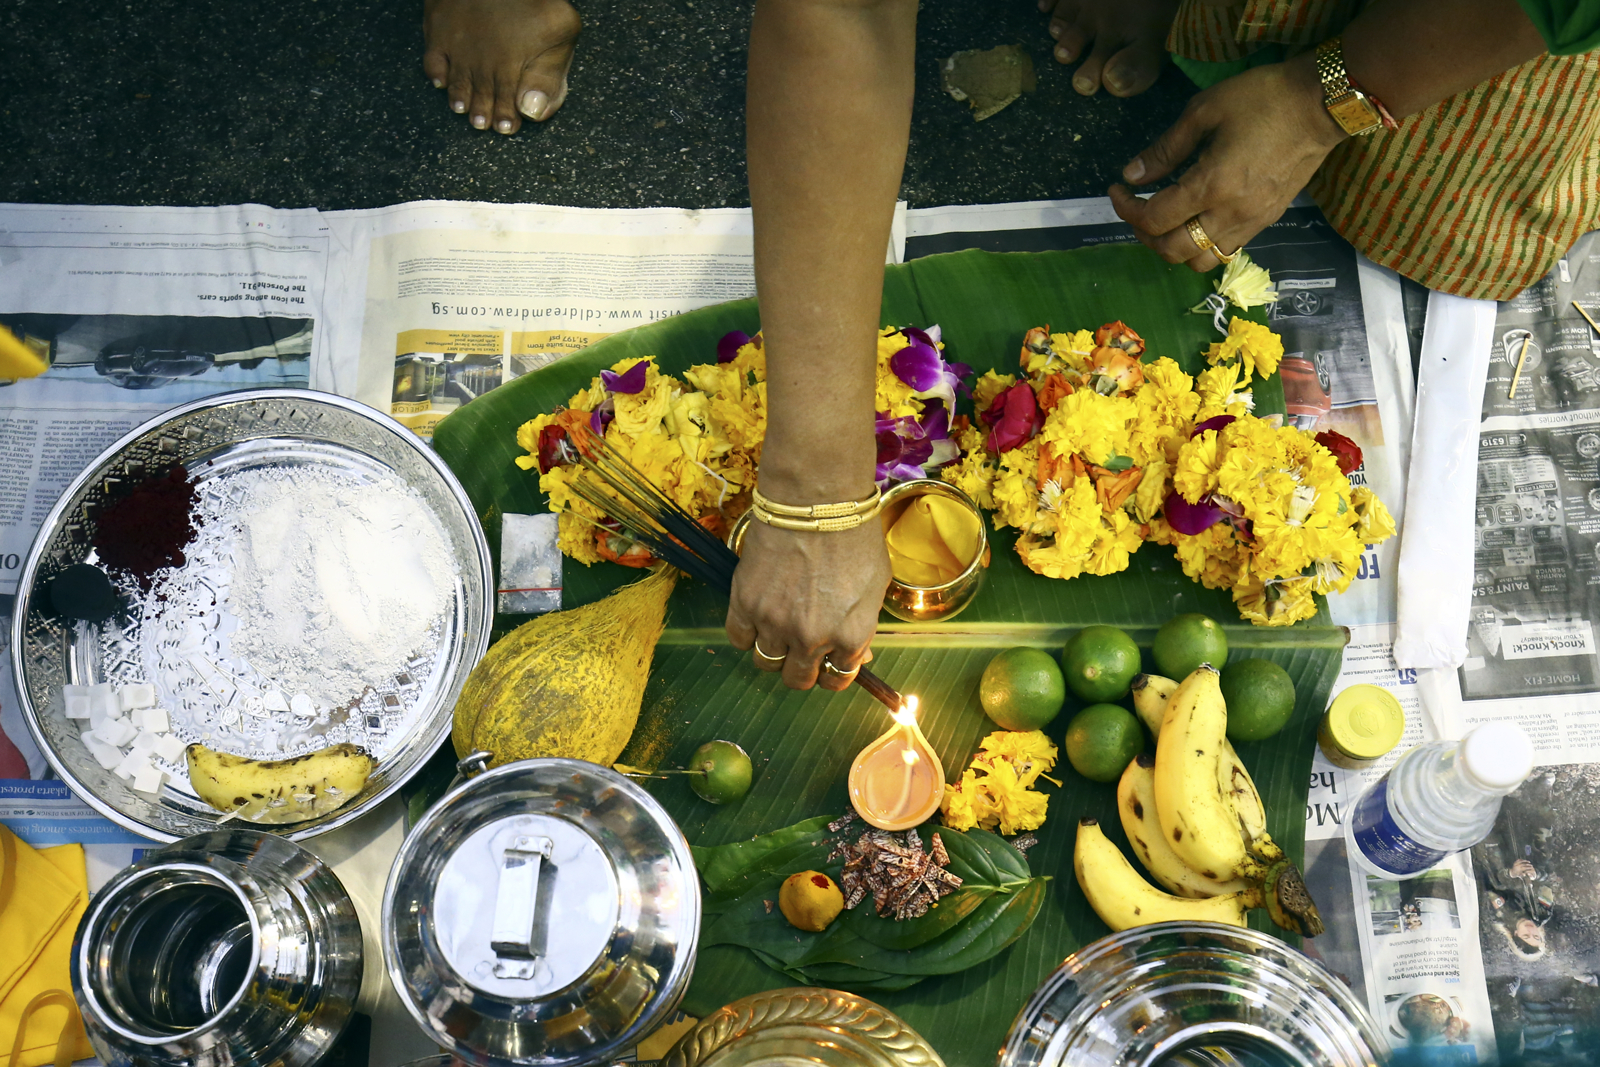 Devotees make offerings during the Thaipusam festival at the Sri Srinivasa Perumal Temple on February 9, 2017 in Singapore.